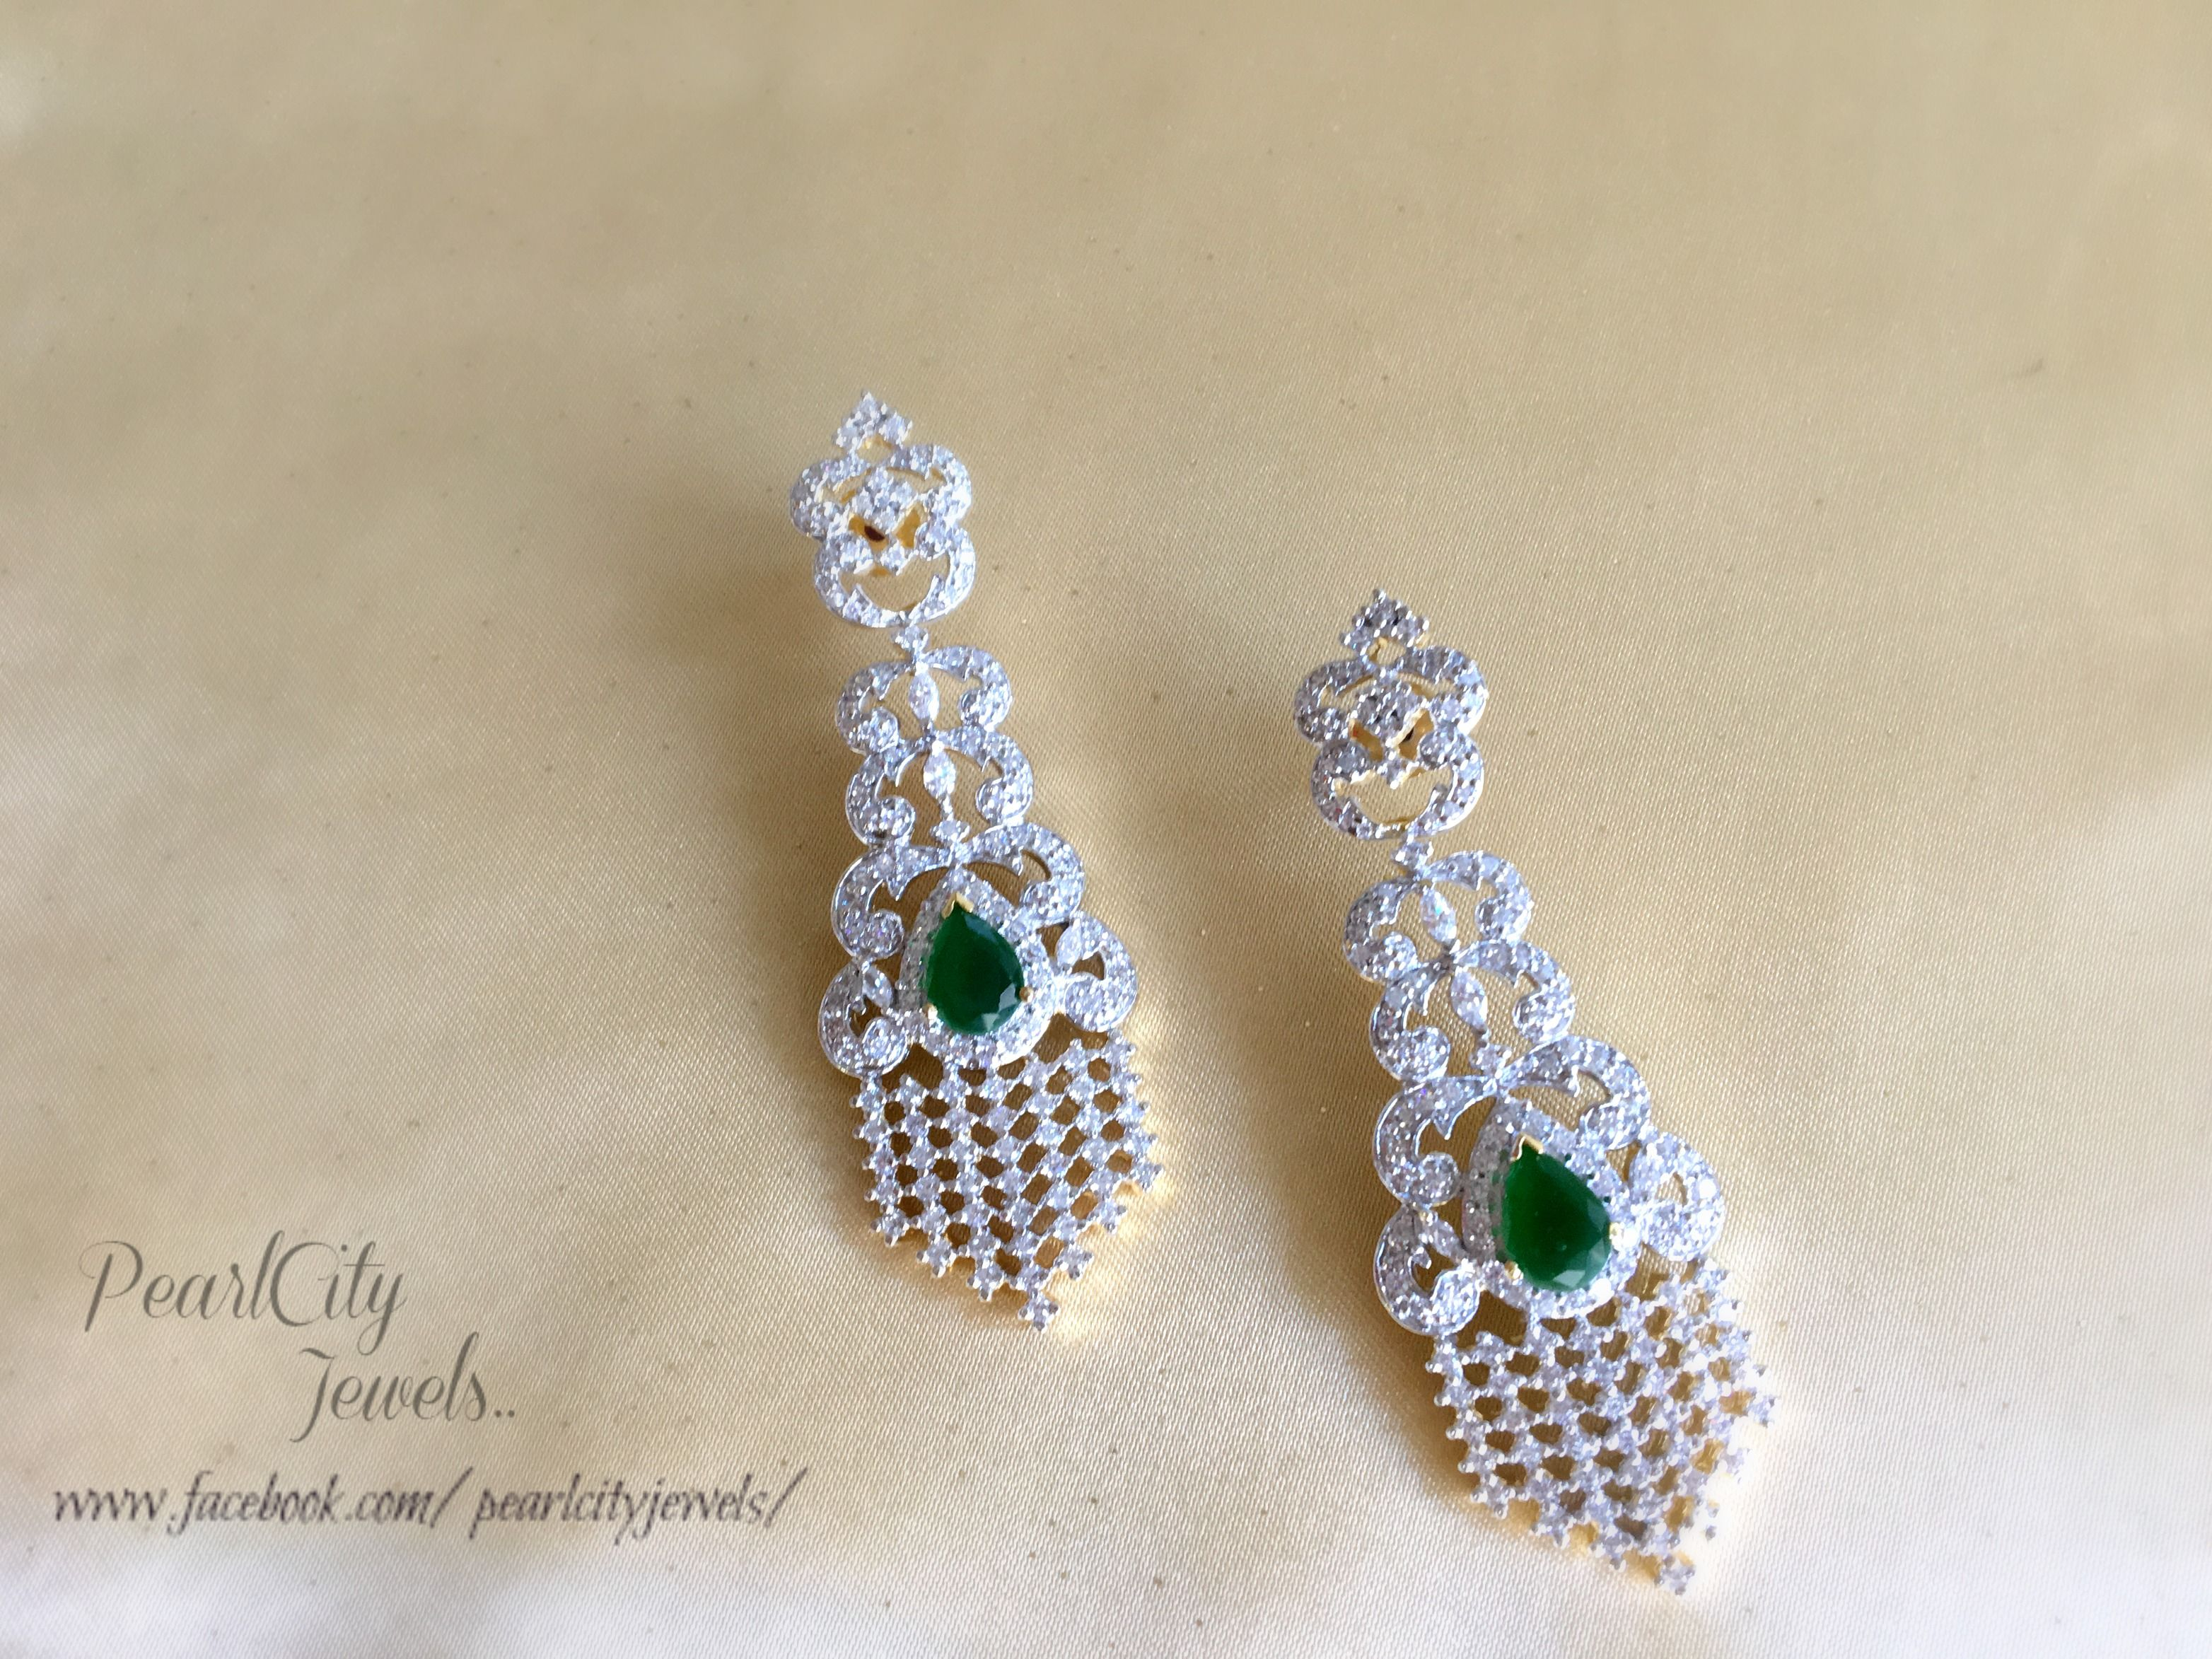 American Diamonds with Green Emerald stone. Perfect for any occasion...